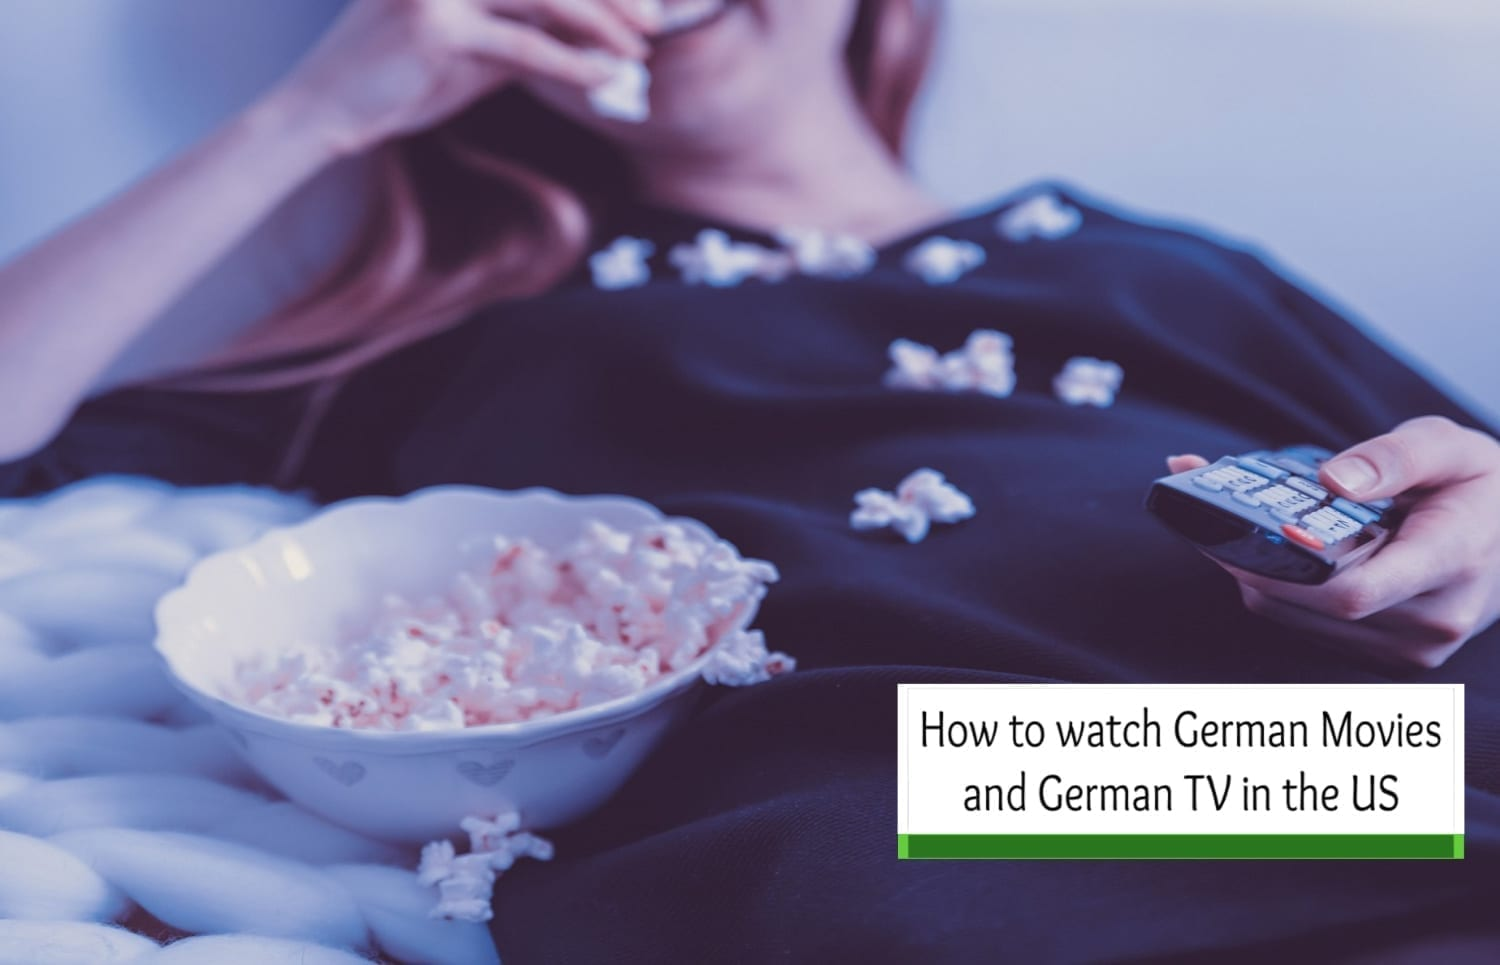 How to Watch German Movies and German TV in the US